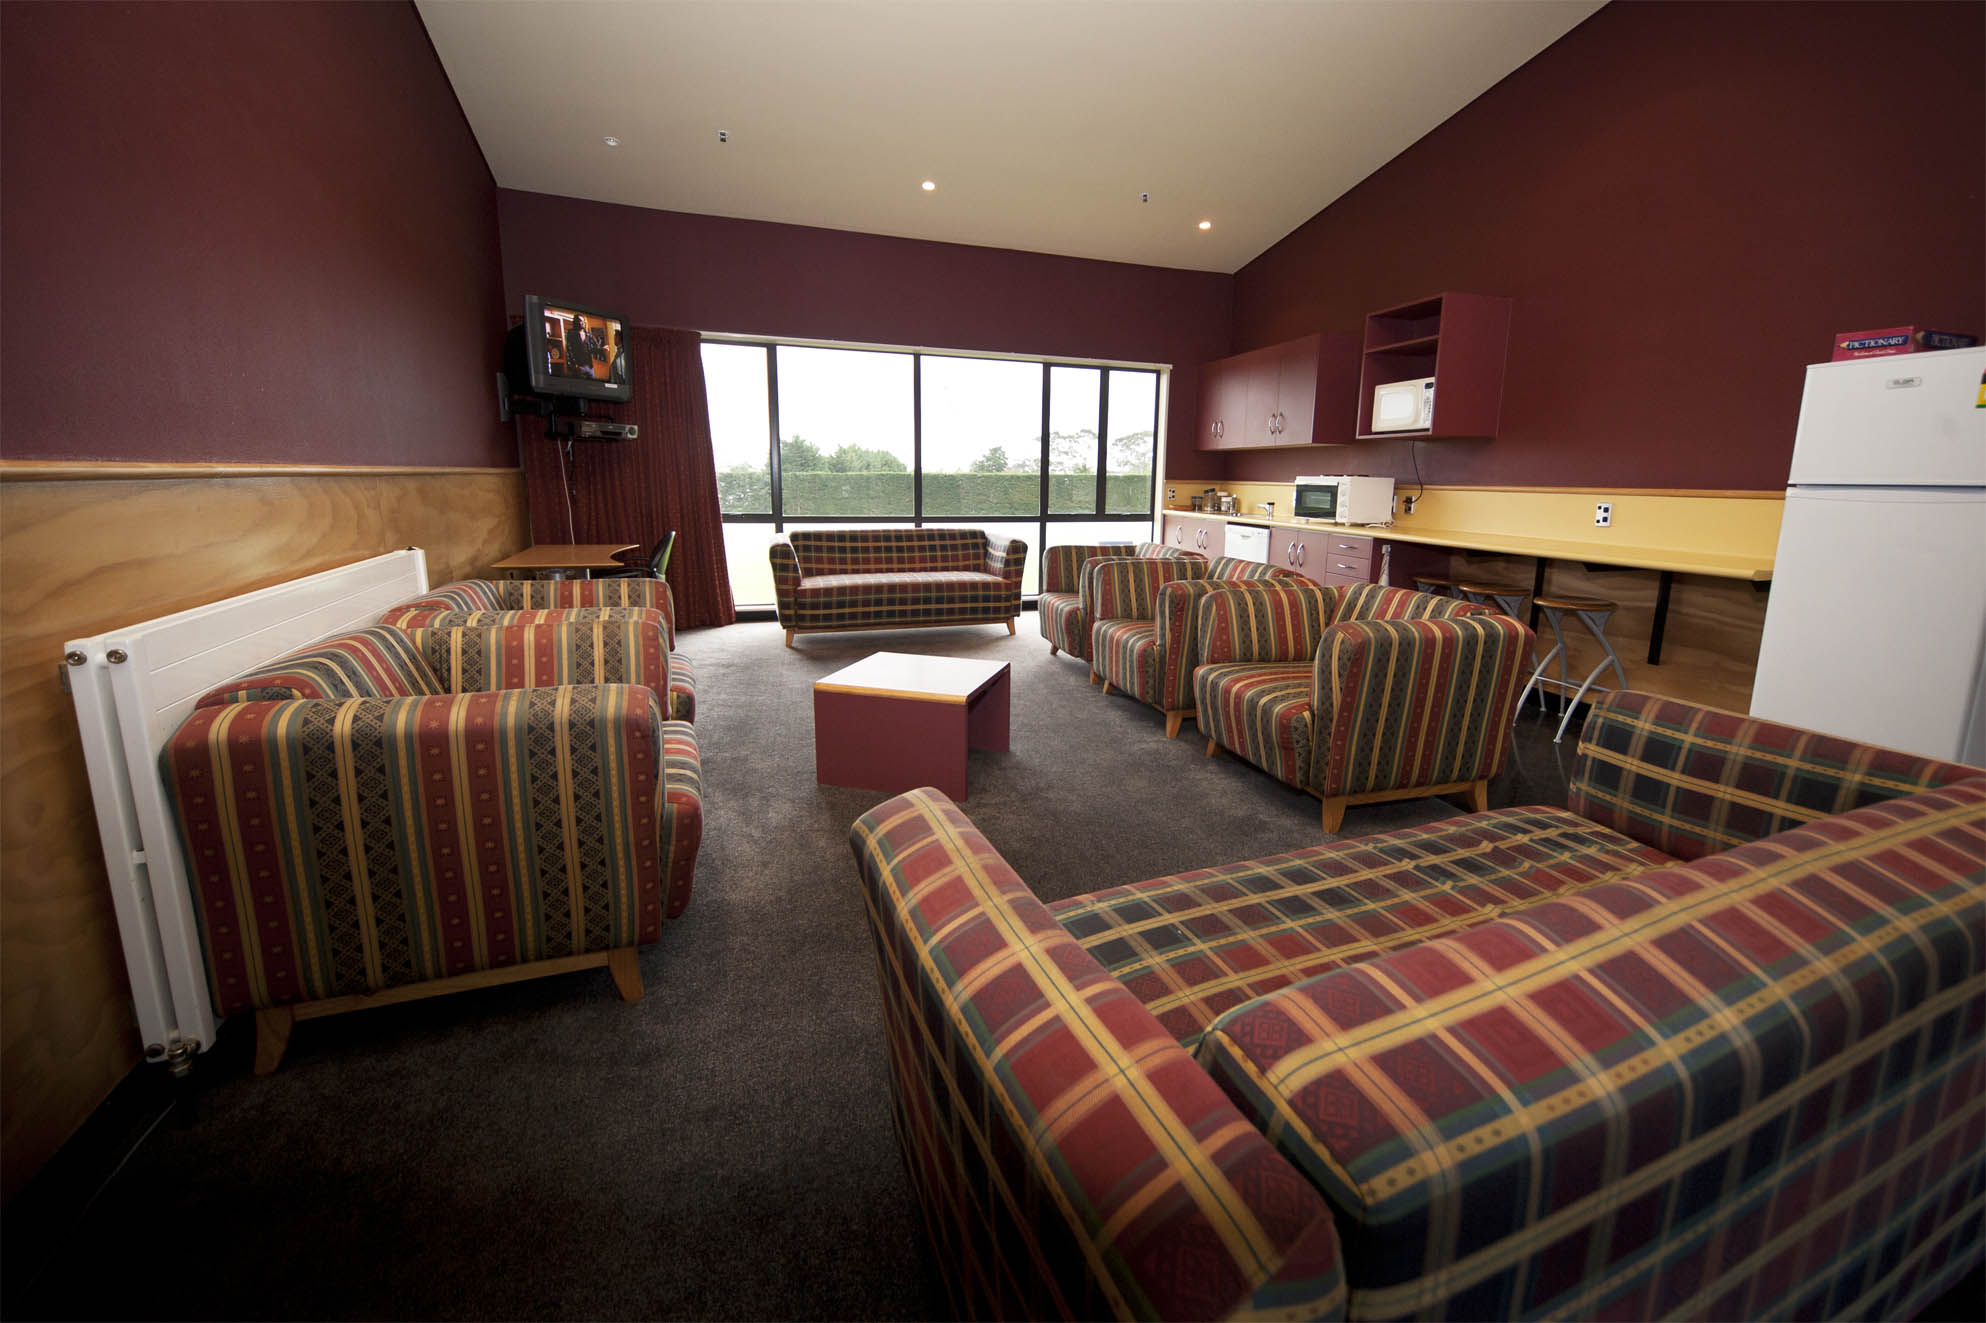 The accommodation block at the Sport and Rugby Institute features a couple of common rooms for players and coaches to take a break